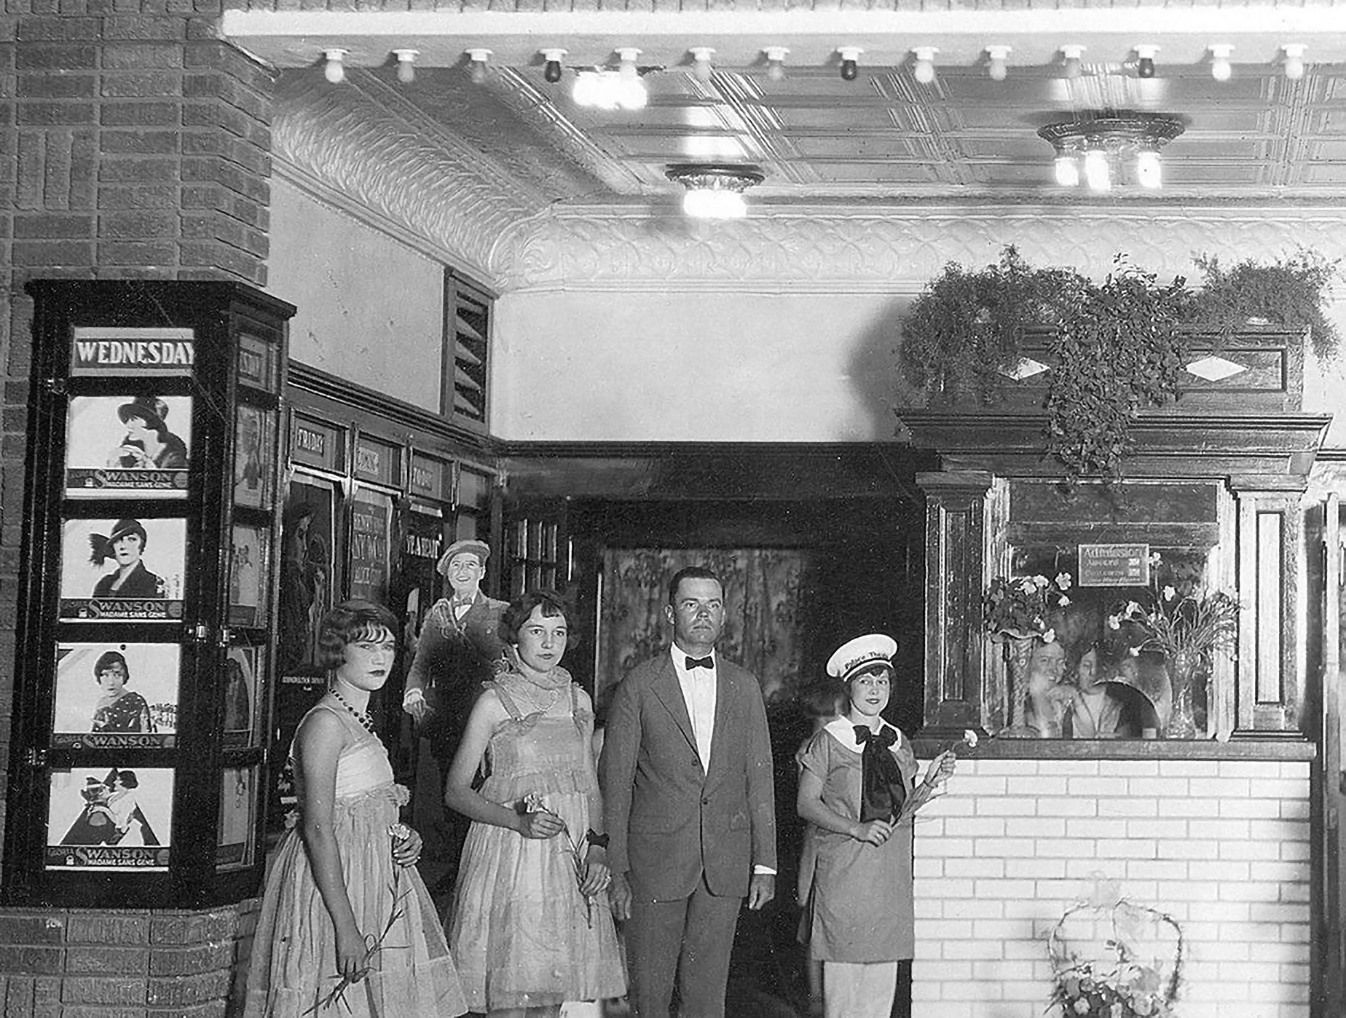 Entrance to Palace Theatre in Snyder Texas in 1930